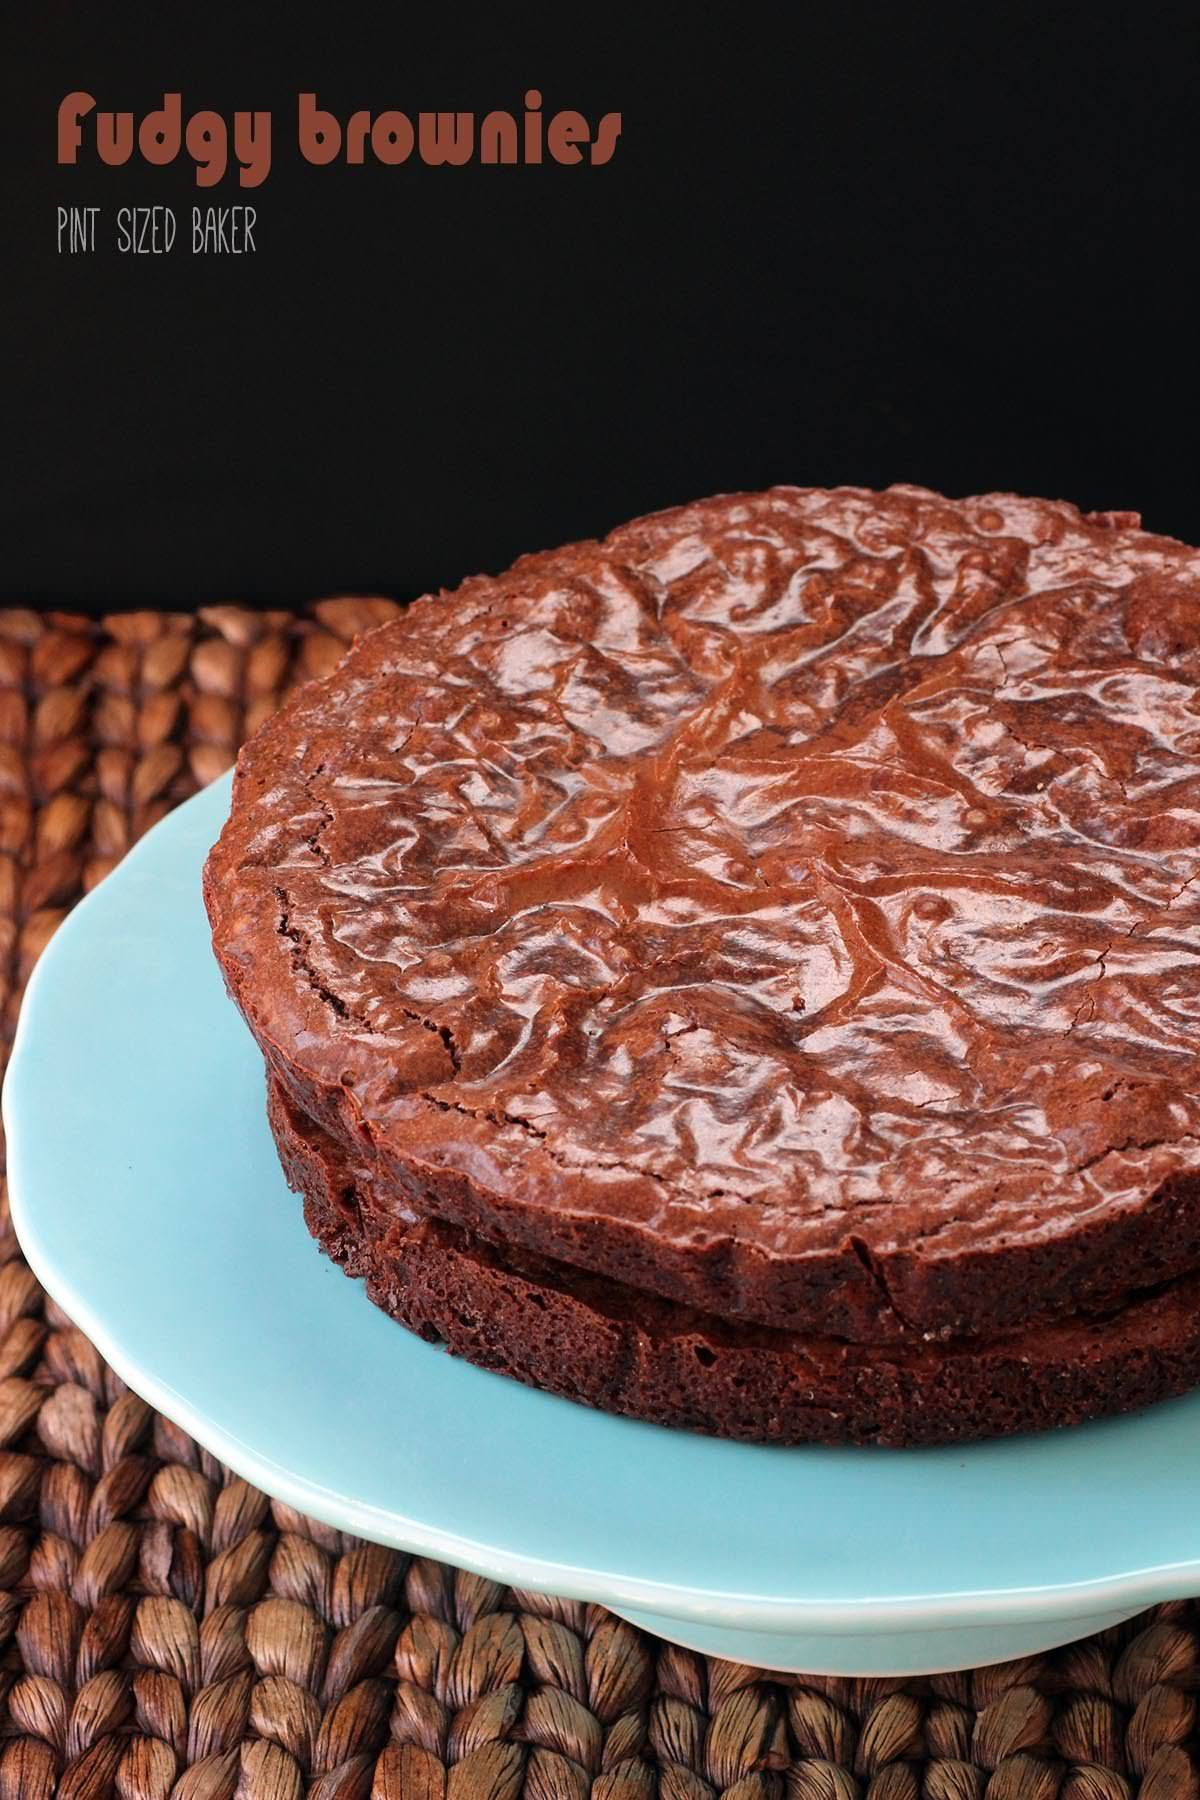 Easy Fudgy Brownie Recipe Made In Round Cake Pans To Add Frosting